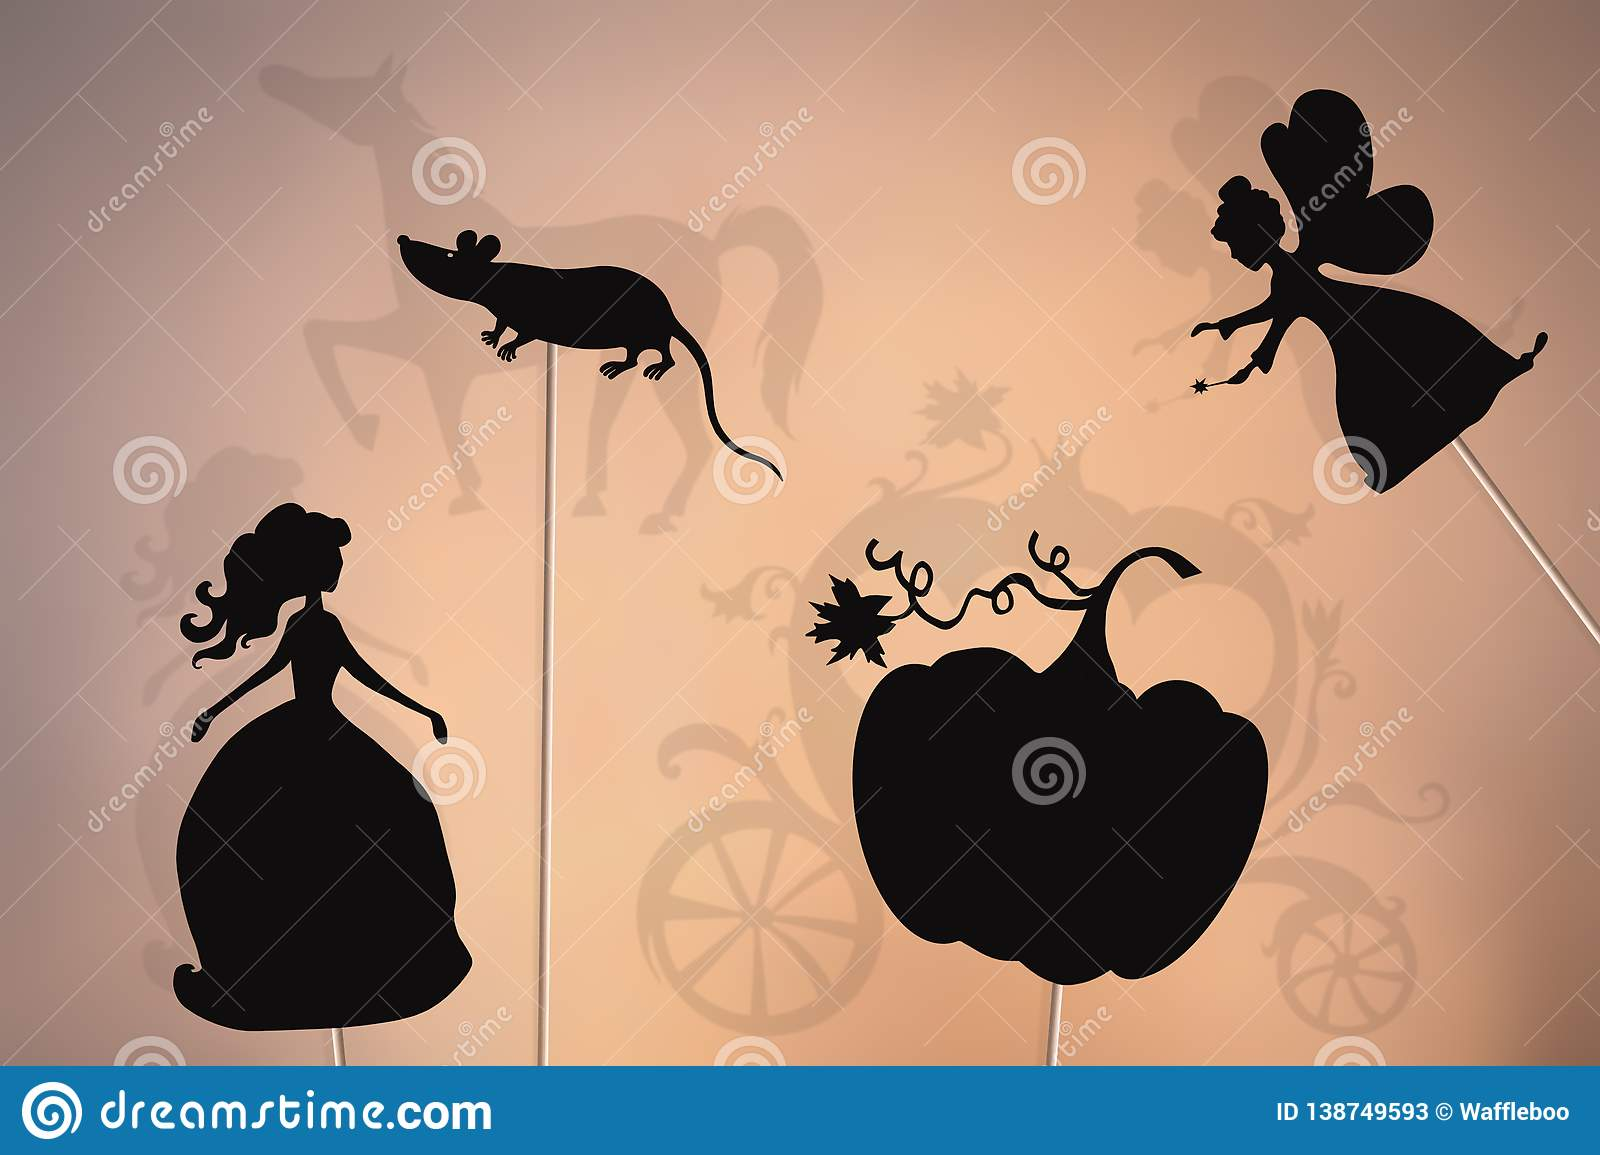 Cinderella Storytelling, Shadow Puppets Stock Illustration